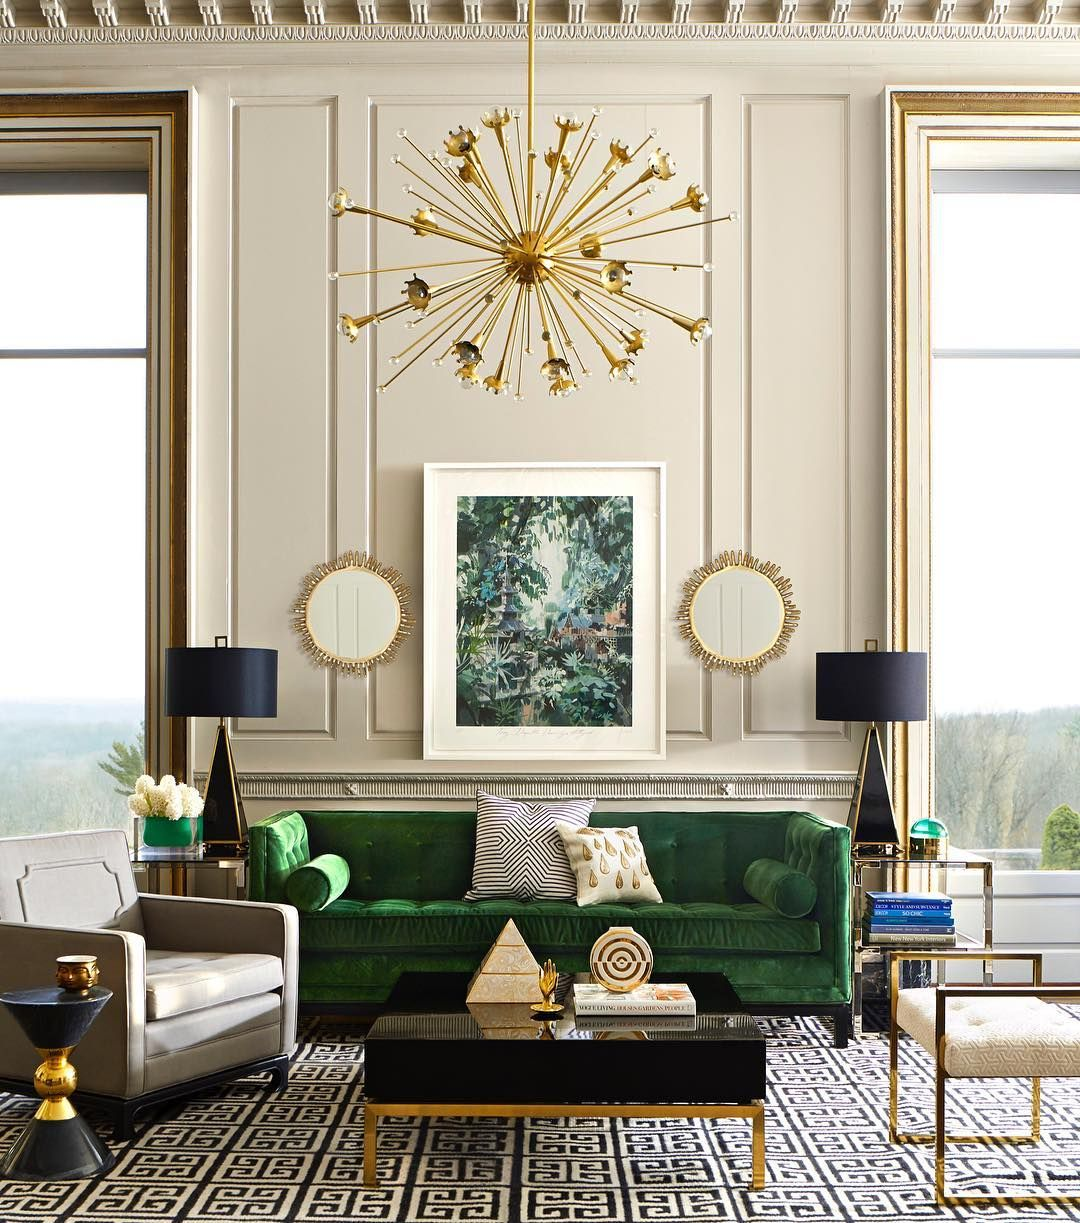 Ja Talks About The Color Green And Its Many Magical Hues In August S Monthly Musings Link In Bio Interior Deco Living Room Interior Room Interior